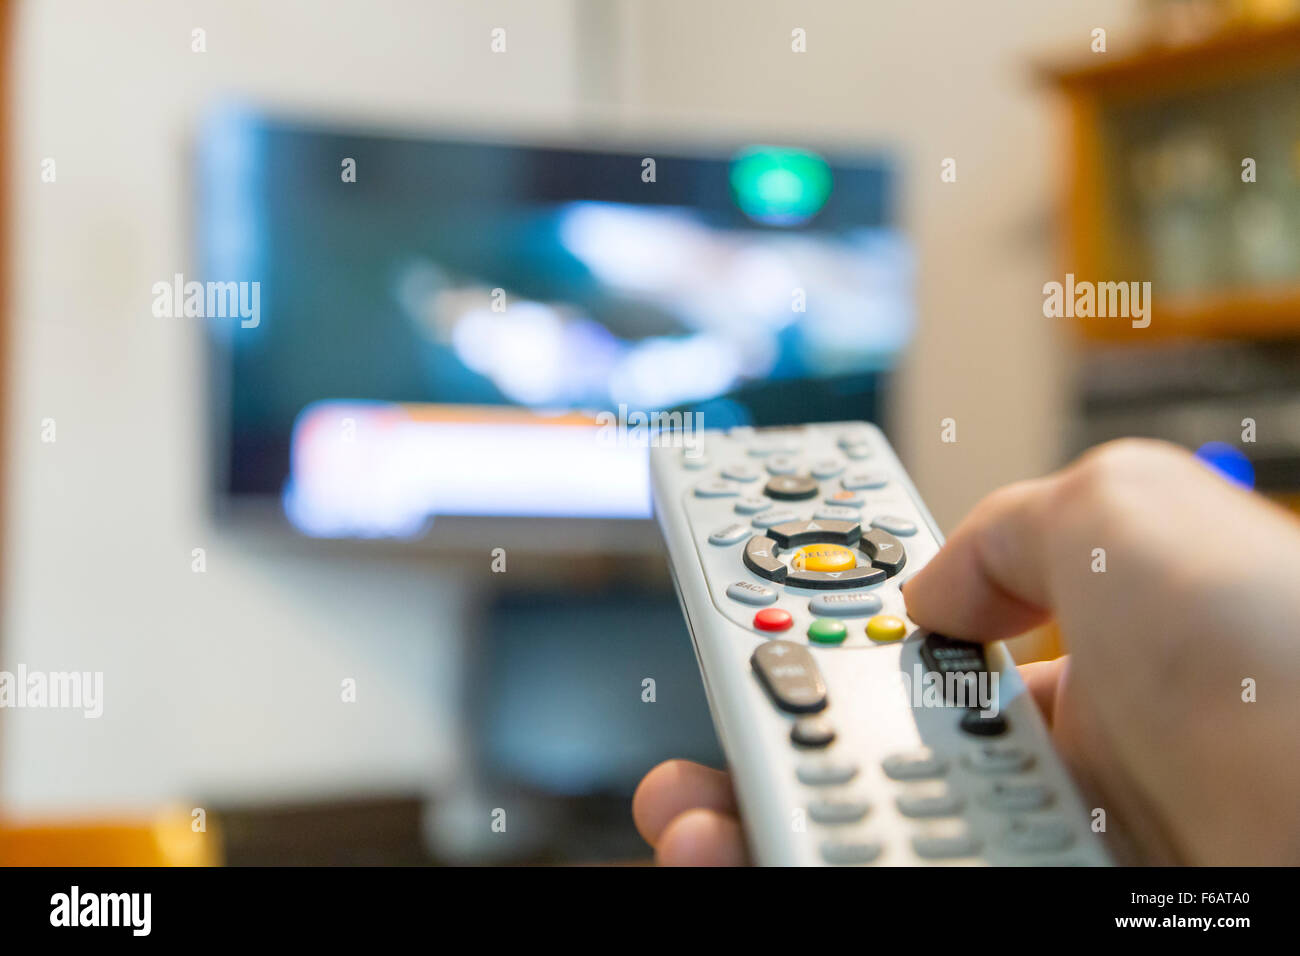 Lg Smart Tv Remote Stock Photos & Lg Smart Tv Remote Stock Images